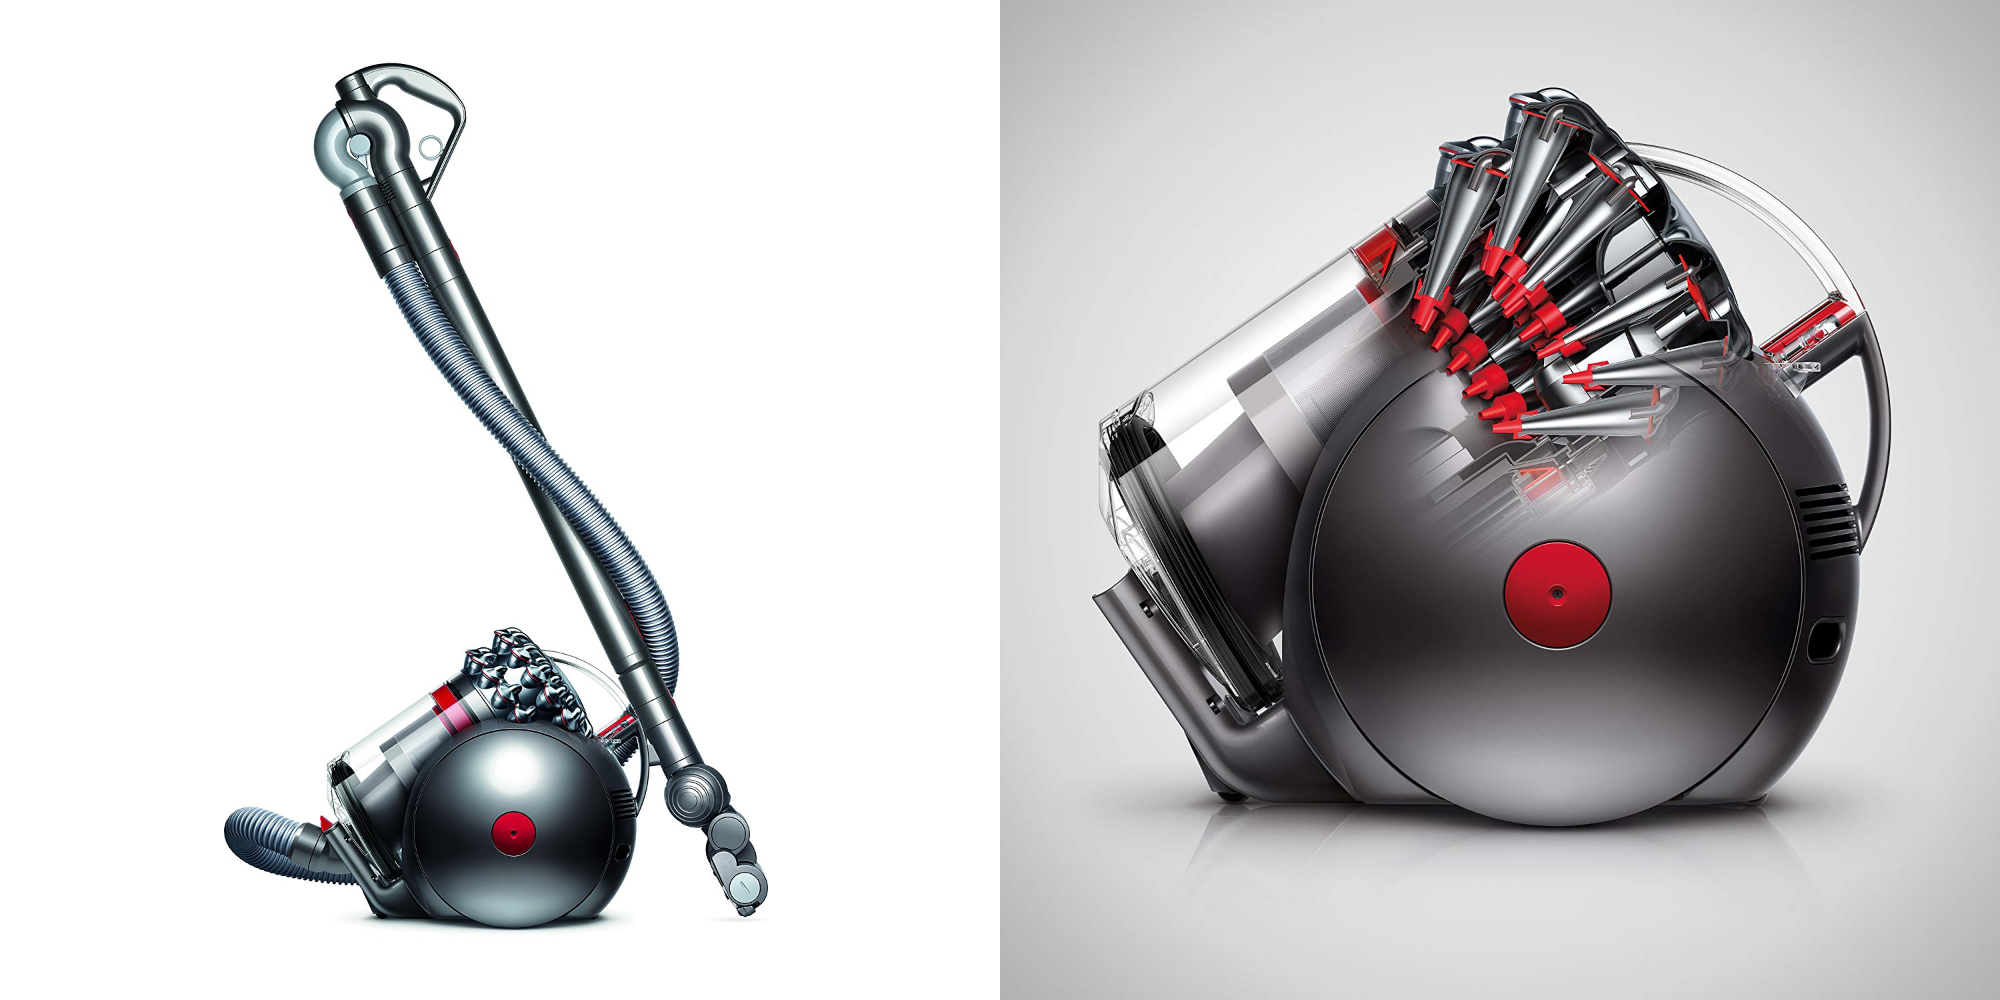 Dyson's Cinetic Big Ball Canister Vacuum drops to low of $150 (Refurb, Orig. $600)